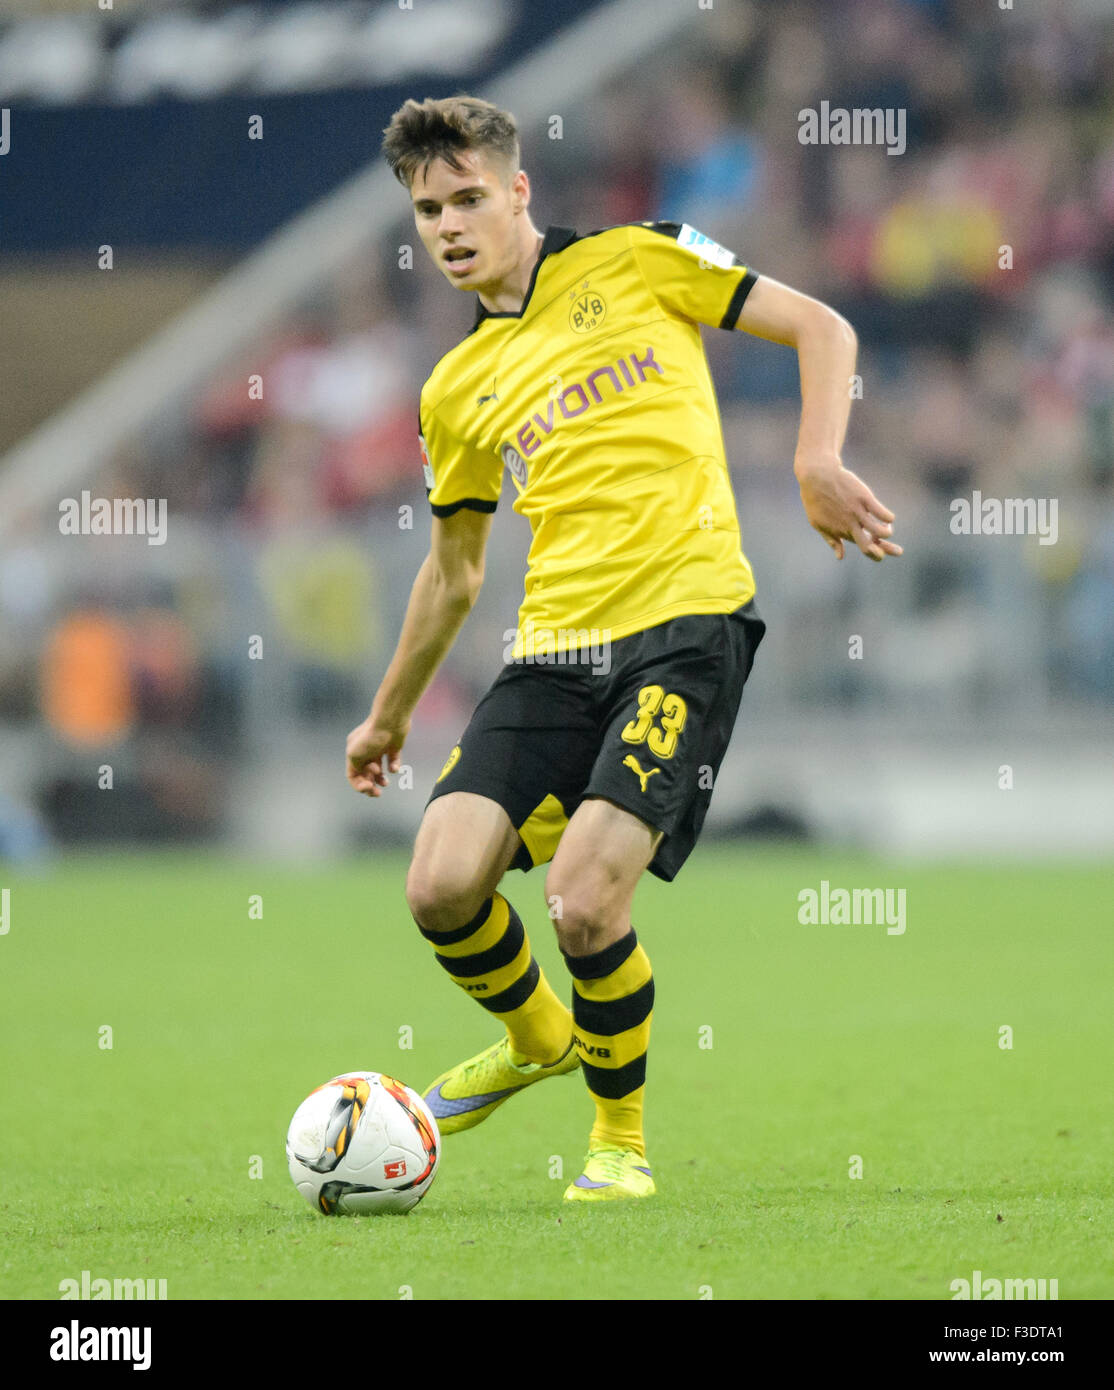 Munich Germany 4th Oct 2015 Dortmunds s Julian Weigl in action